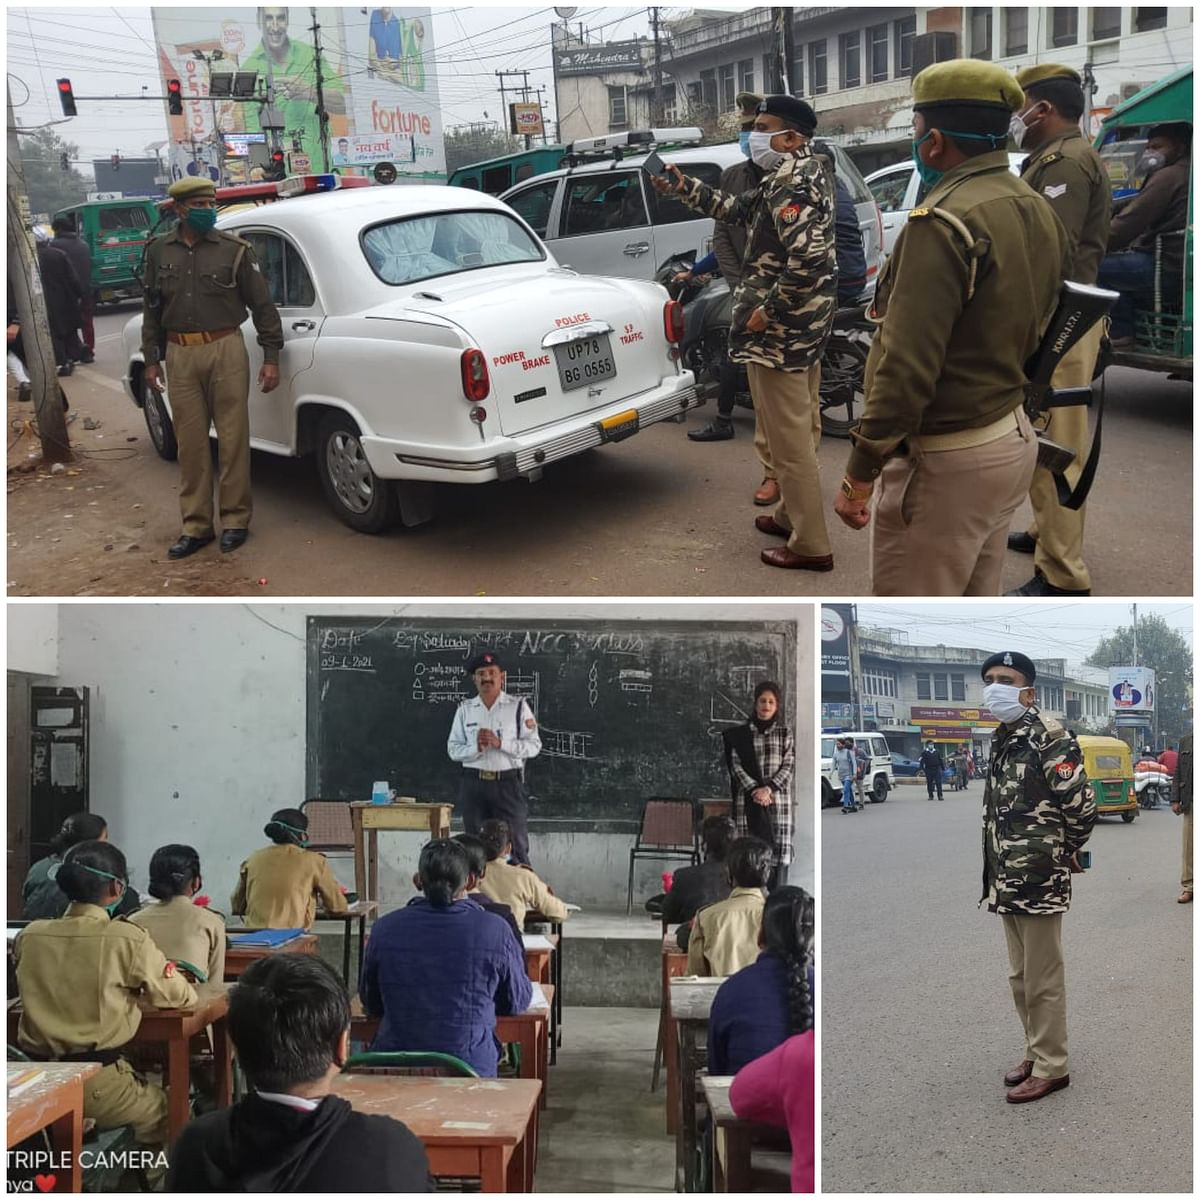 Campaigned against vehicles parked illegally on roads and fined